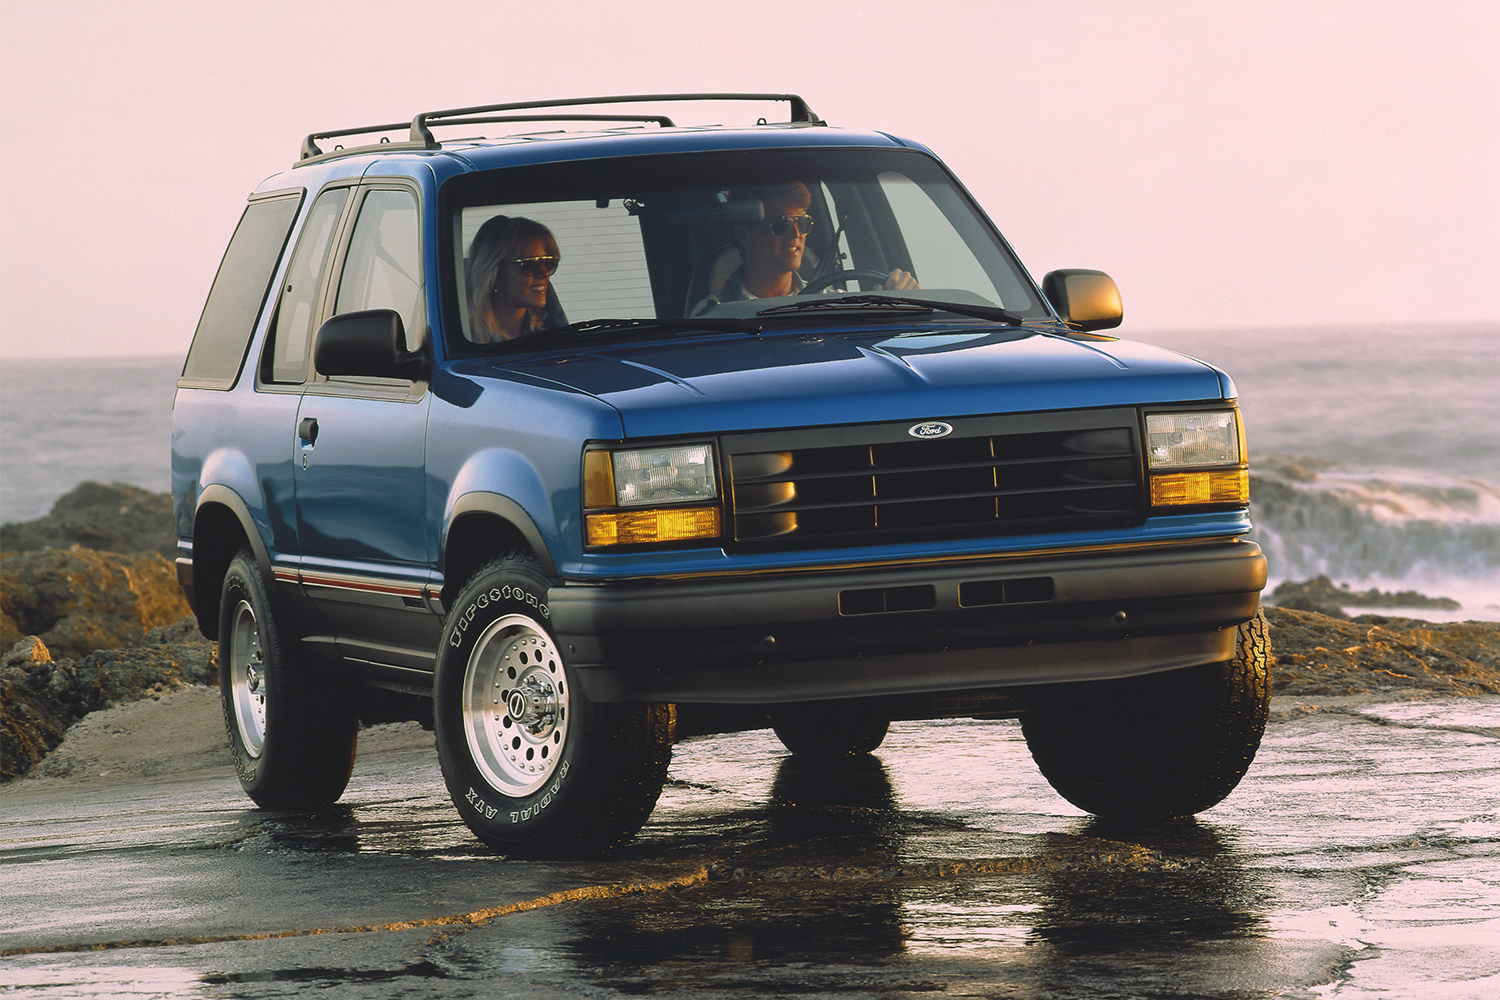 A man driving a 1992 blue Ford Explorer SUV near the ocean in a vintage photo